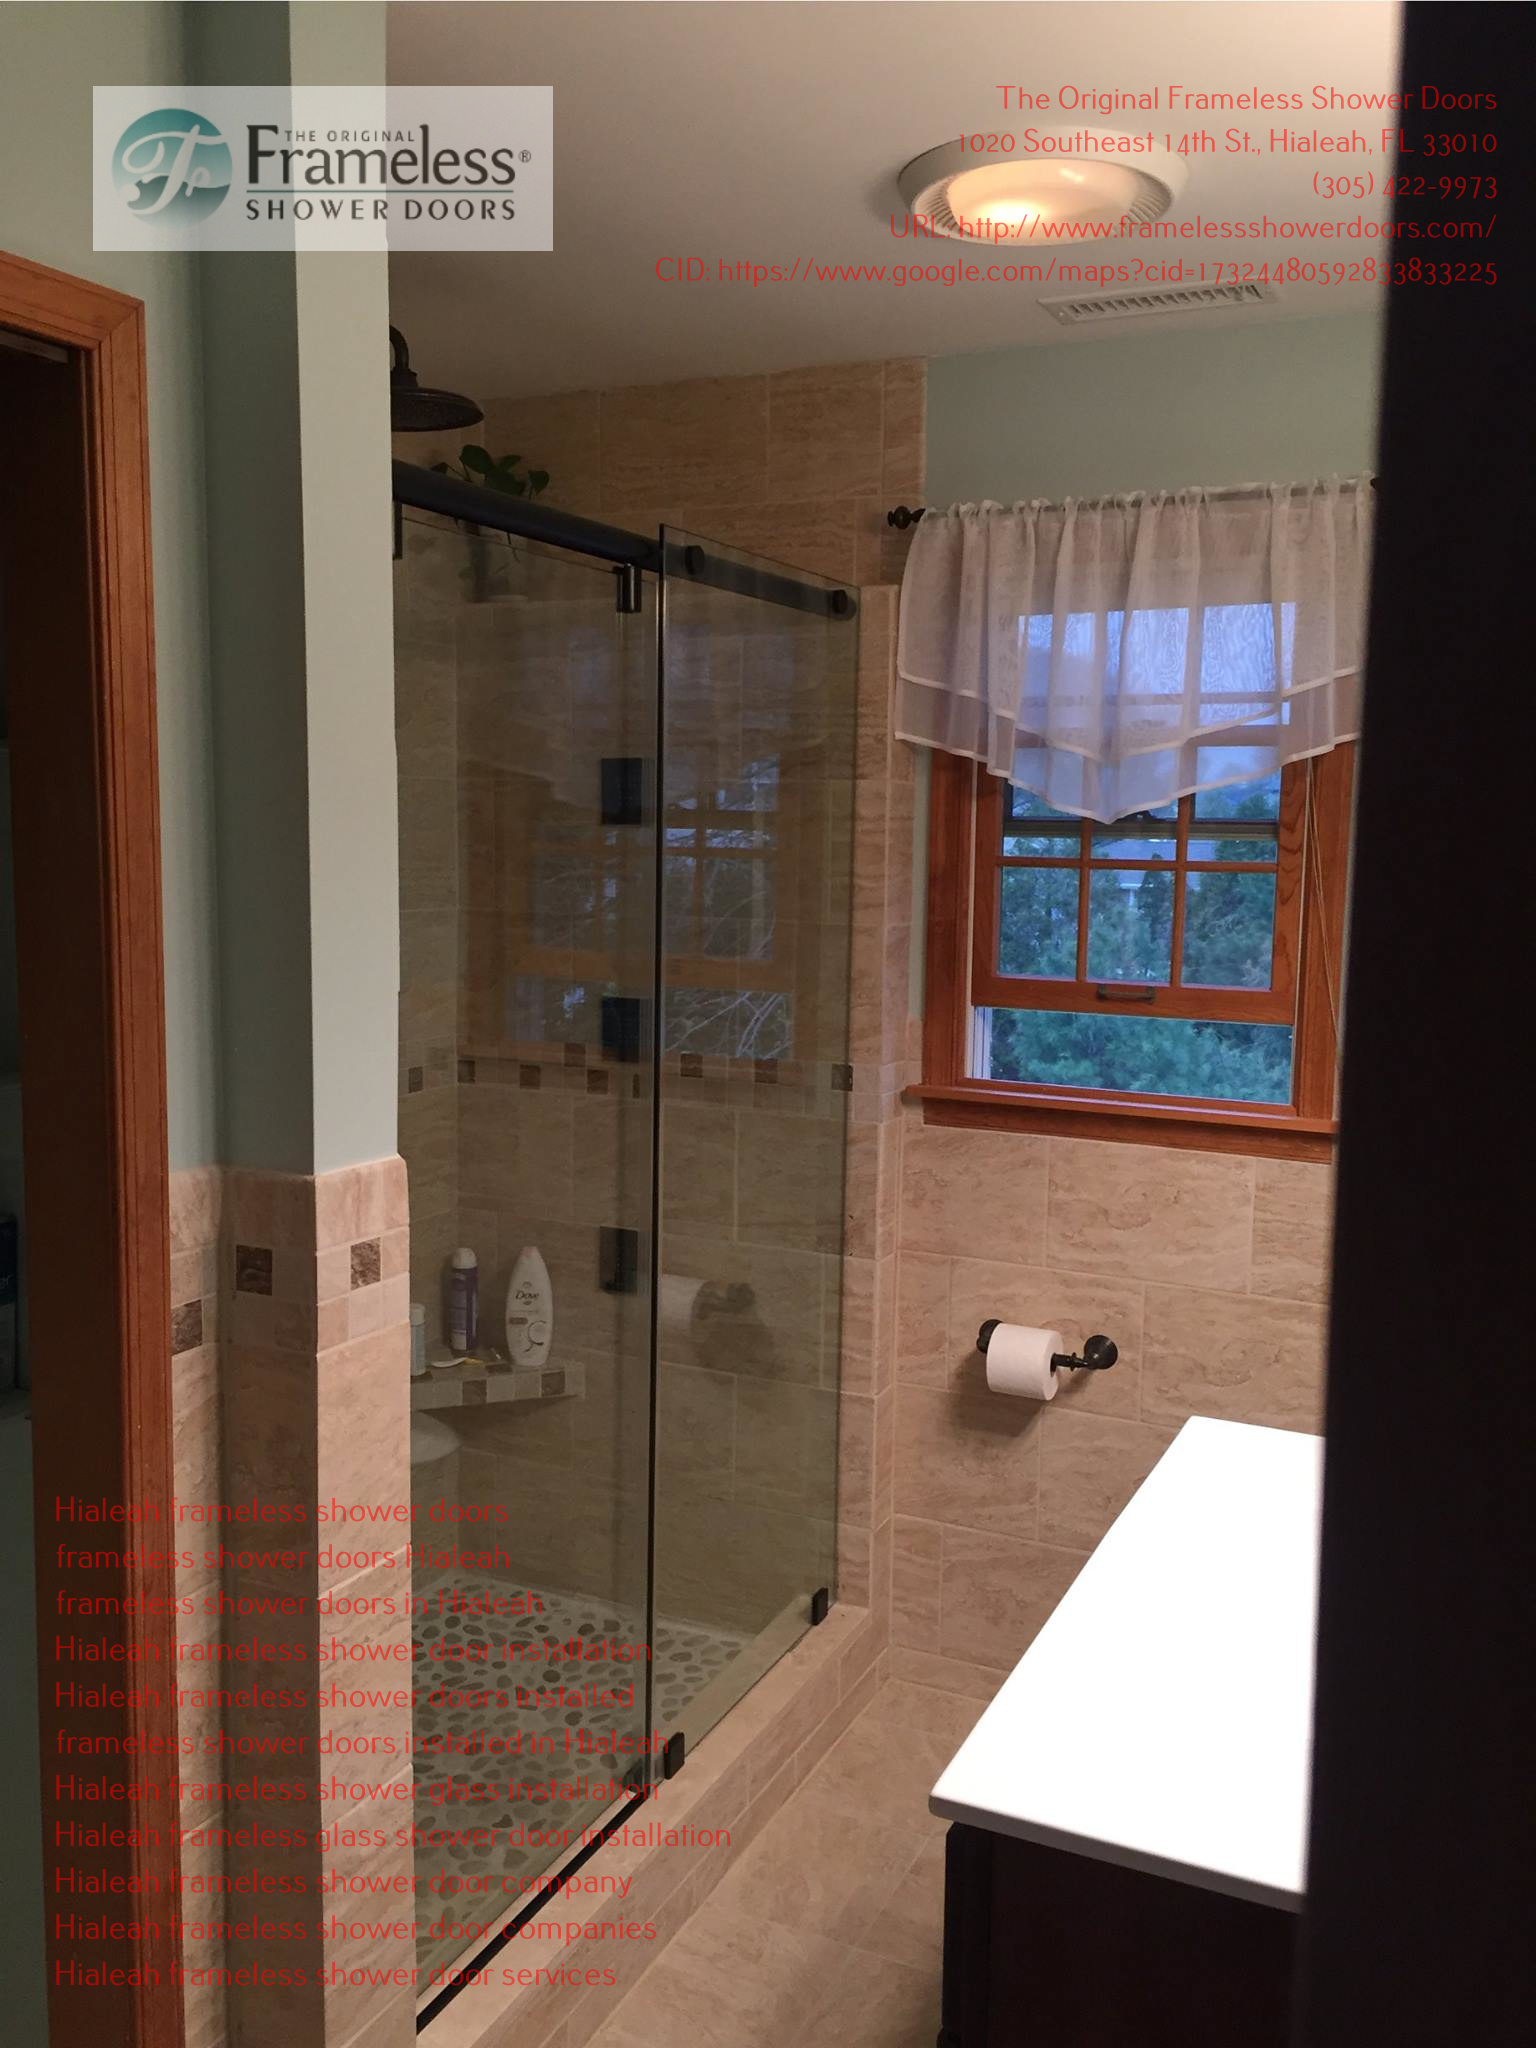 The Original Frameless Shower Doors Is Now Offering Professional Advice To Homeowners In Hialeah, FL